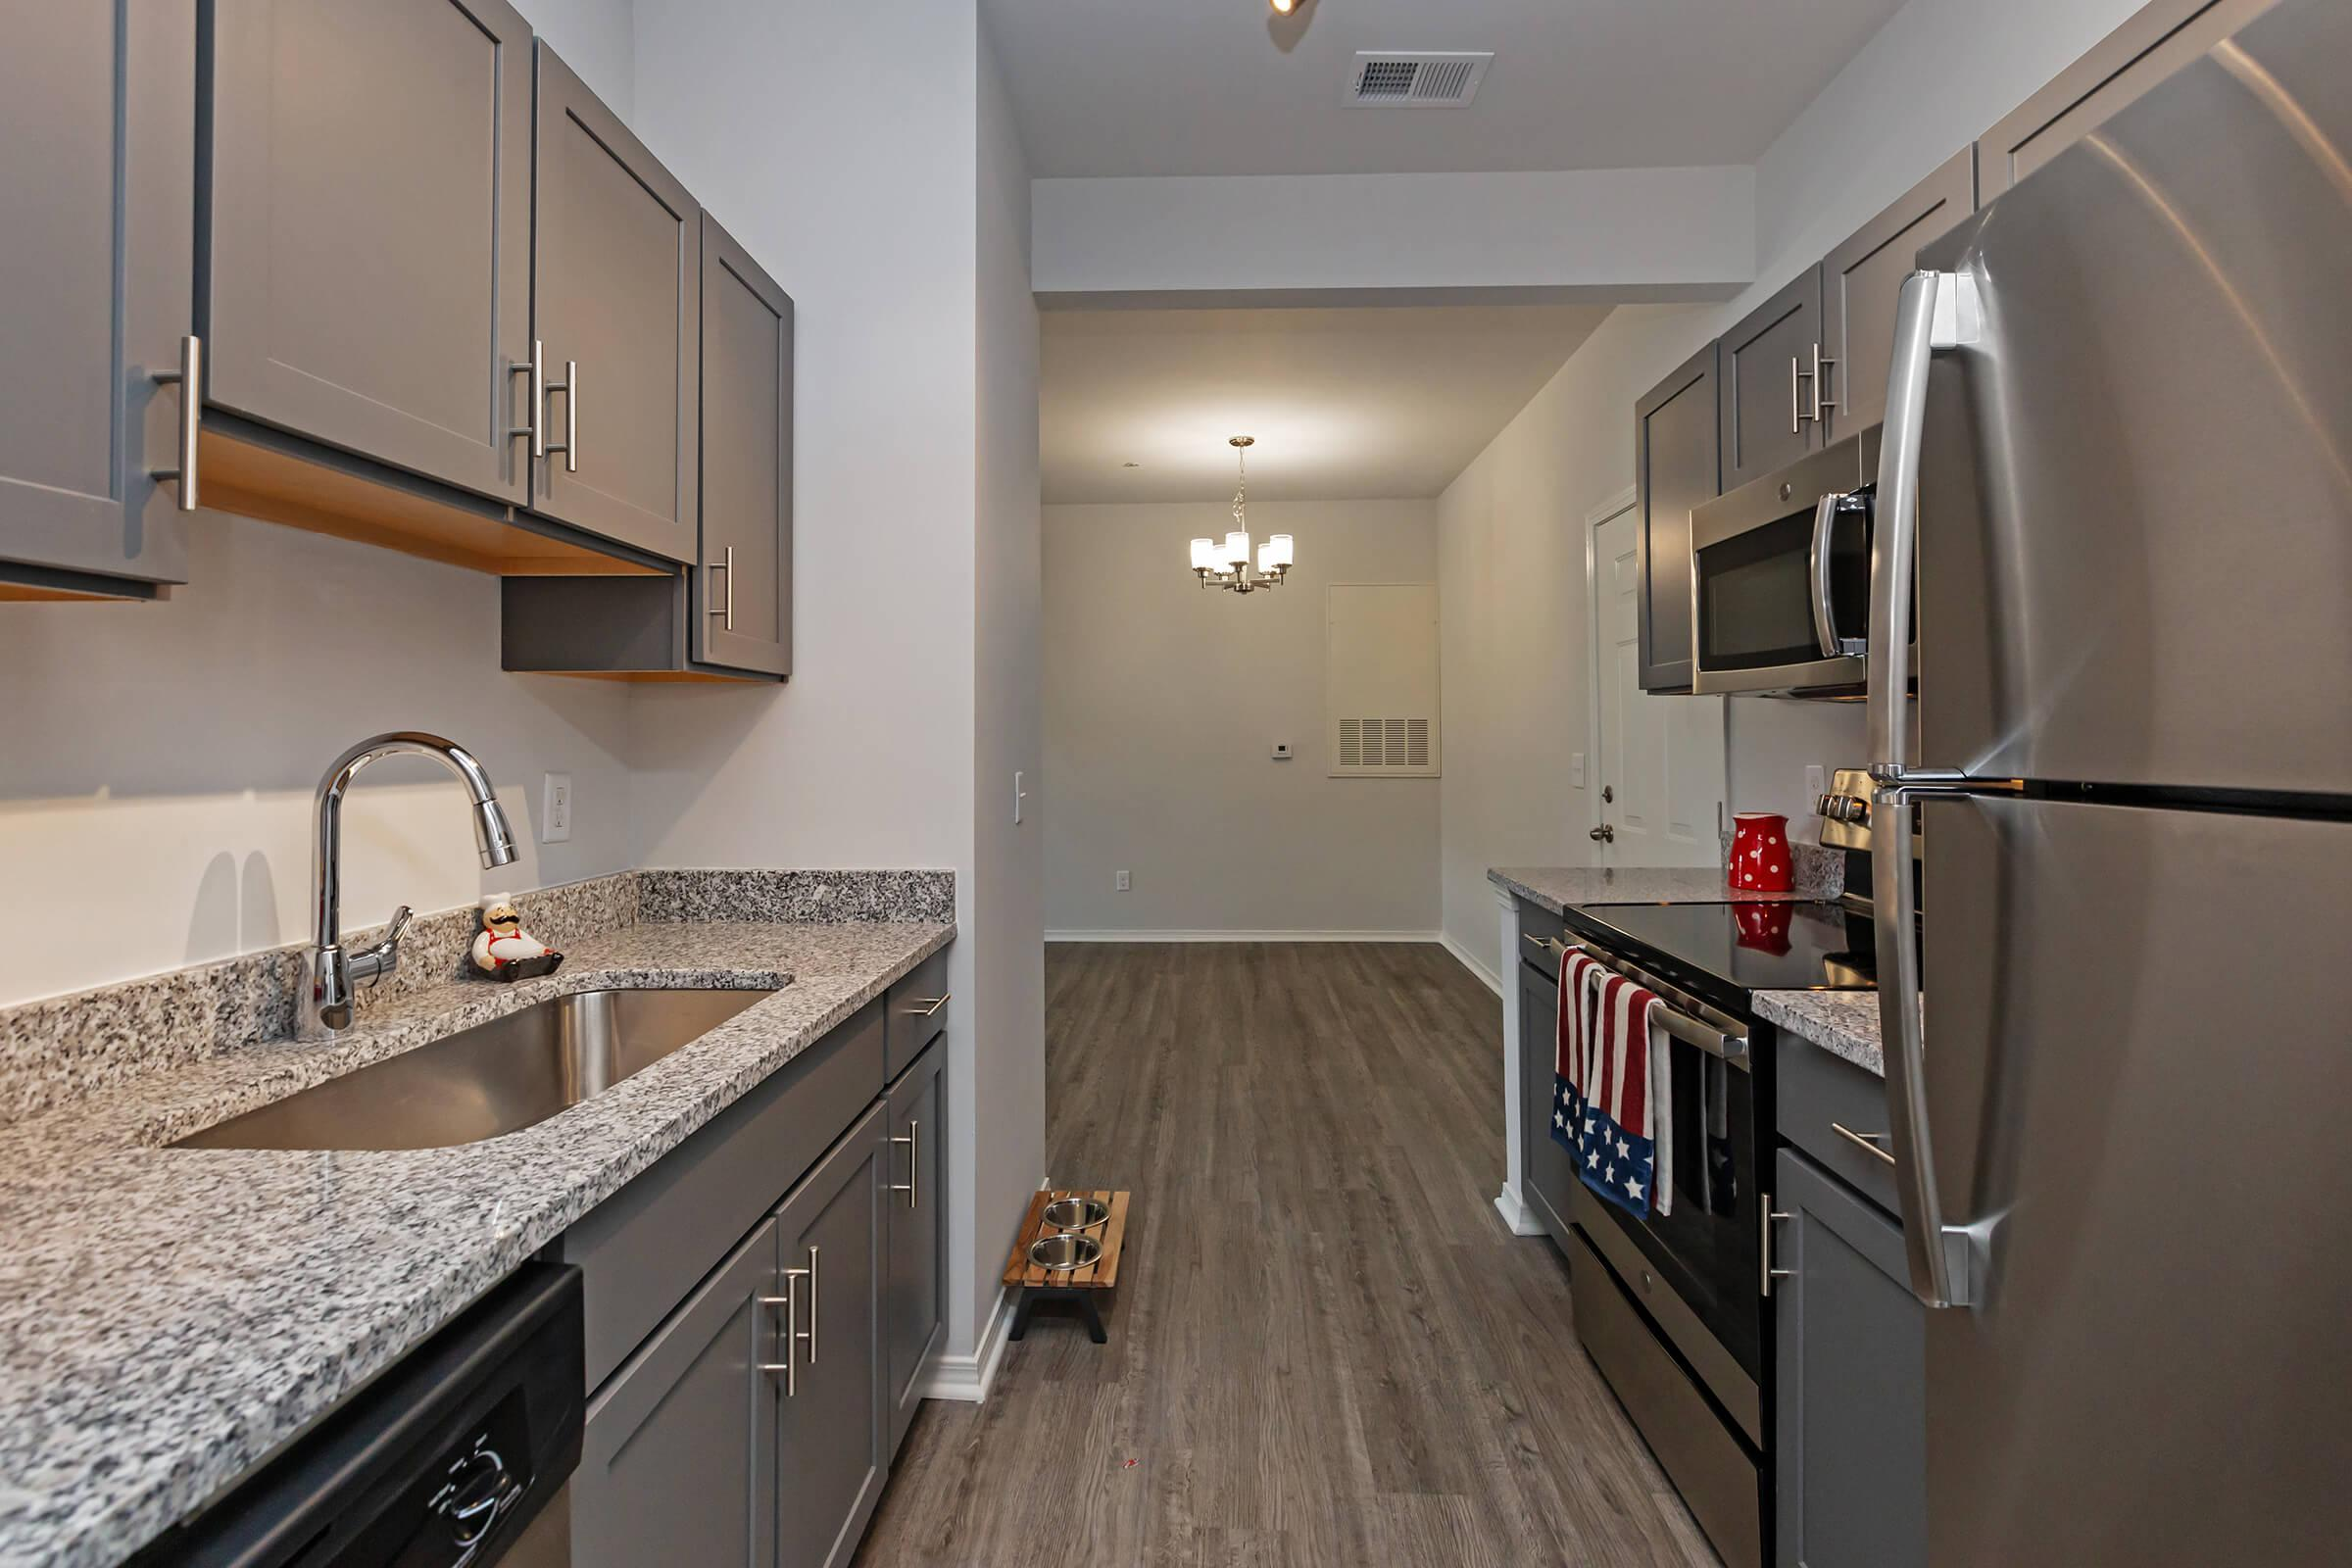 Carlisle Offer A Spacious Kitchen At New Providence Park In Wilmington, NC